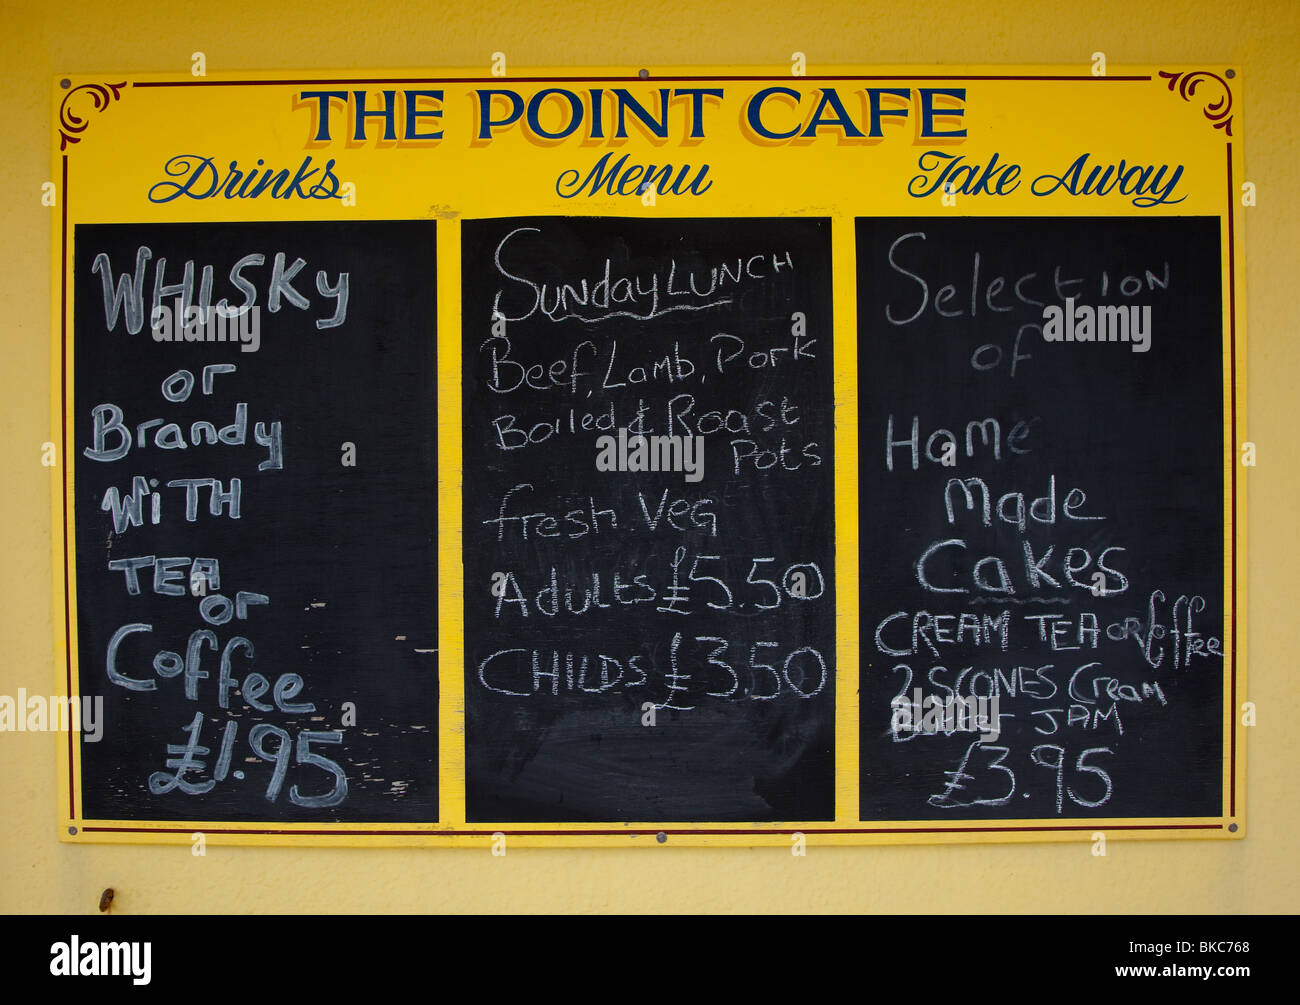 Chalkboard menu prices for drinks and food the Point Cafe Pendine Wales UK - Stock Image